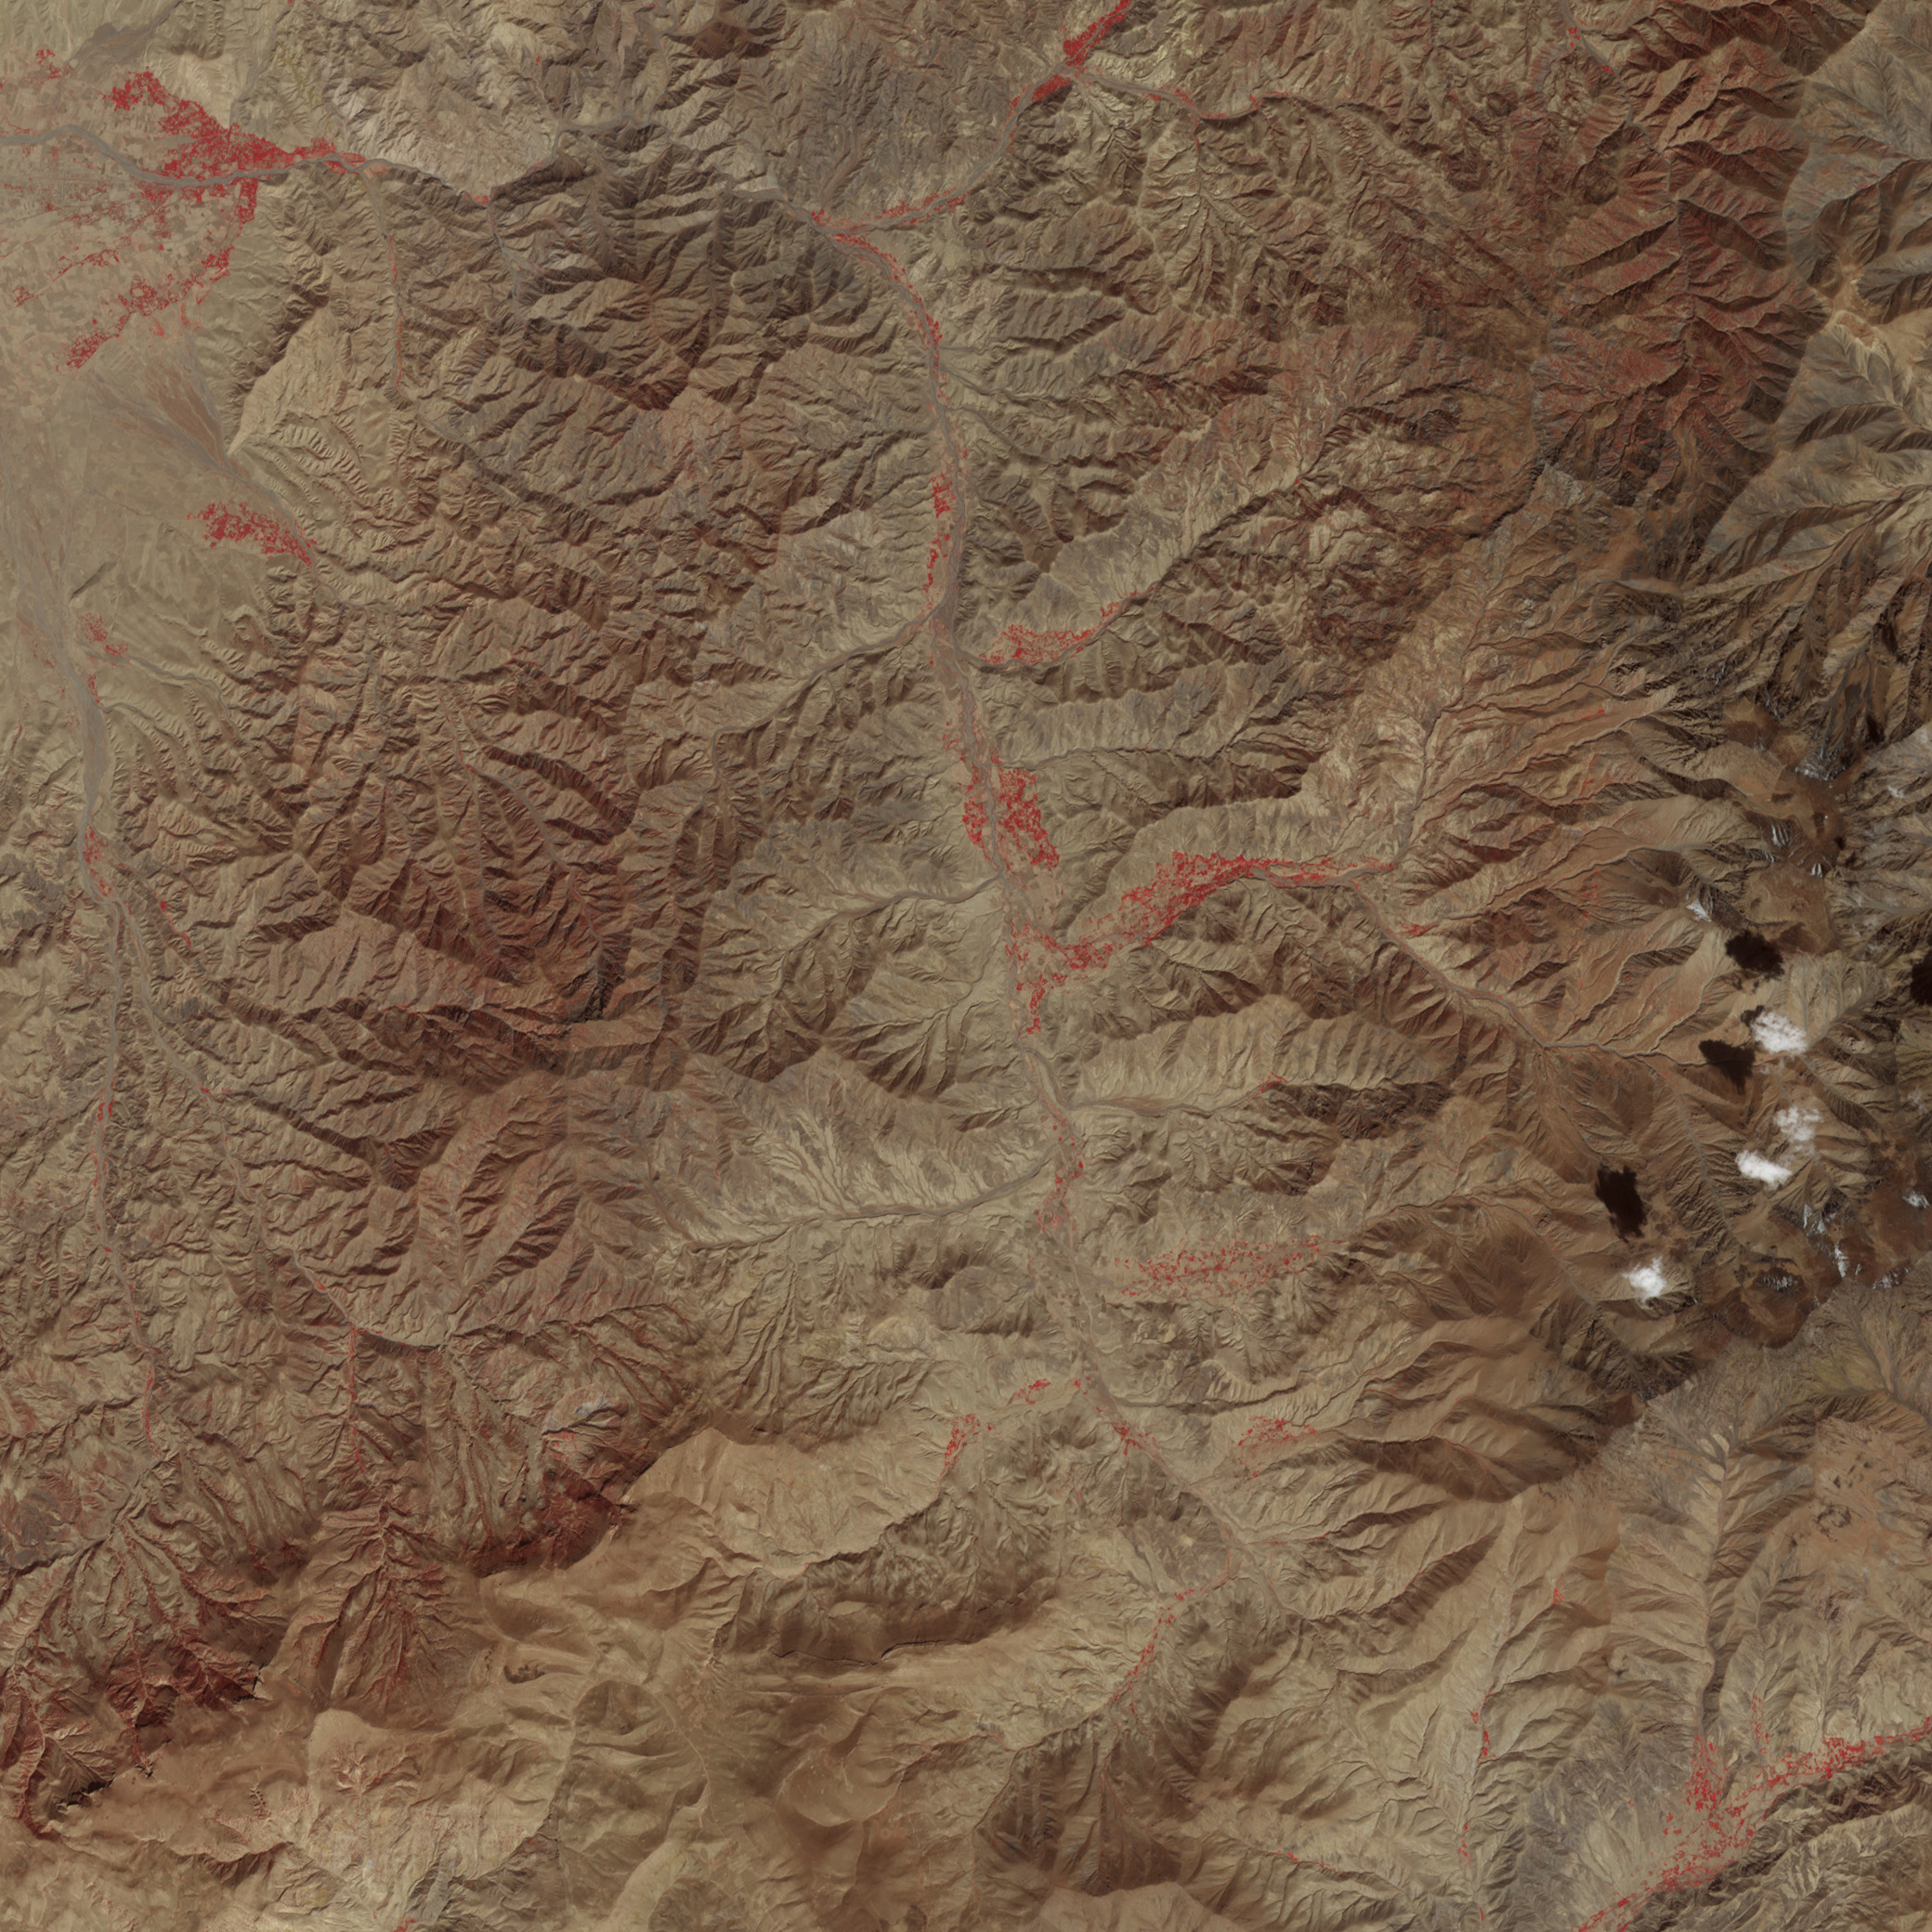 Earthquake Hits Hindu Kush, Afghanistan March 25, 2002